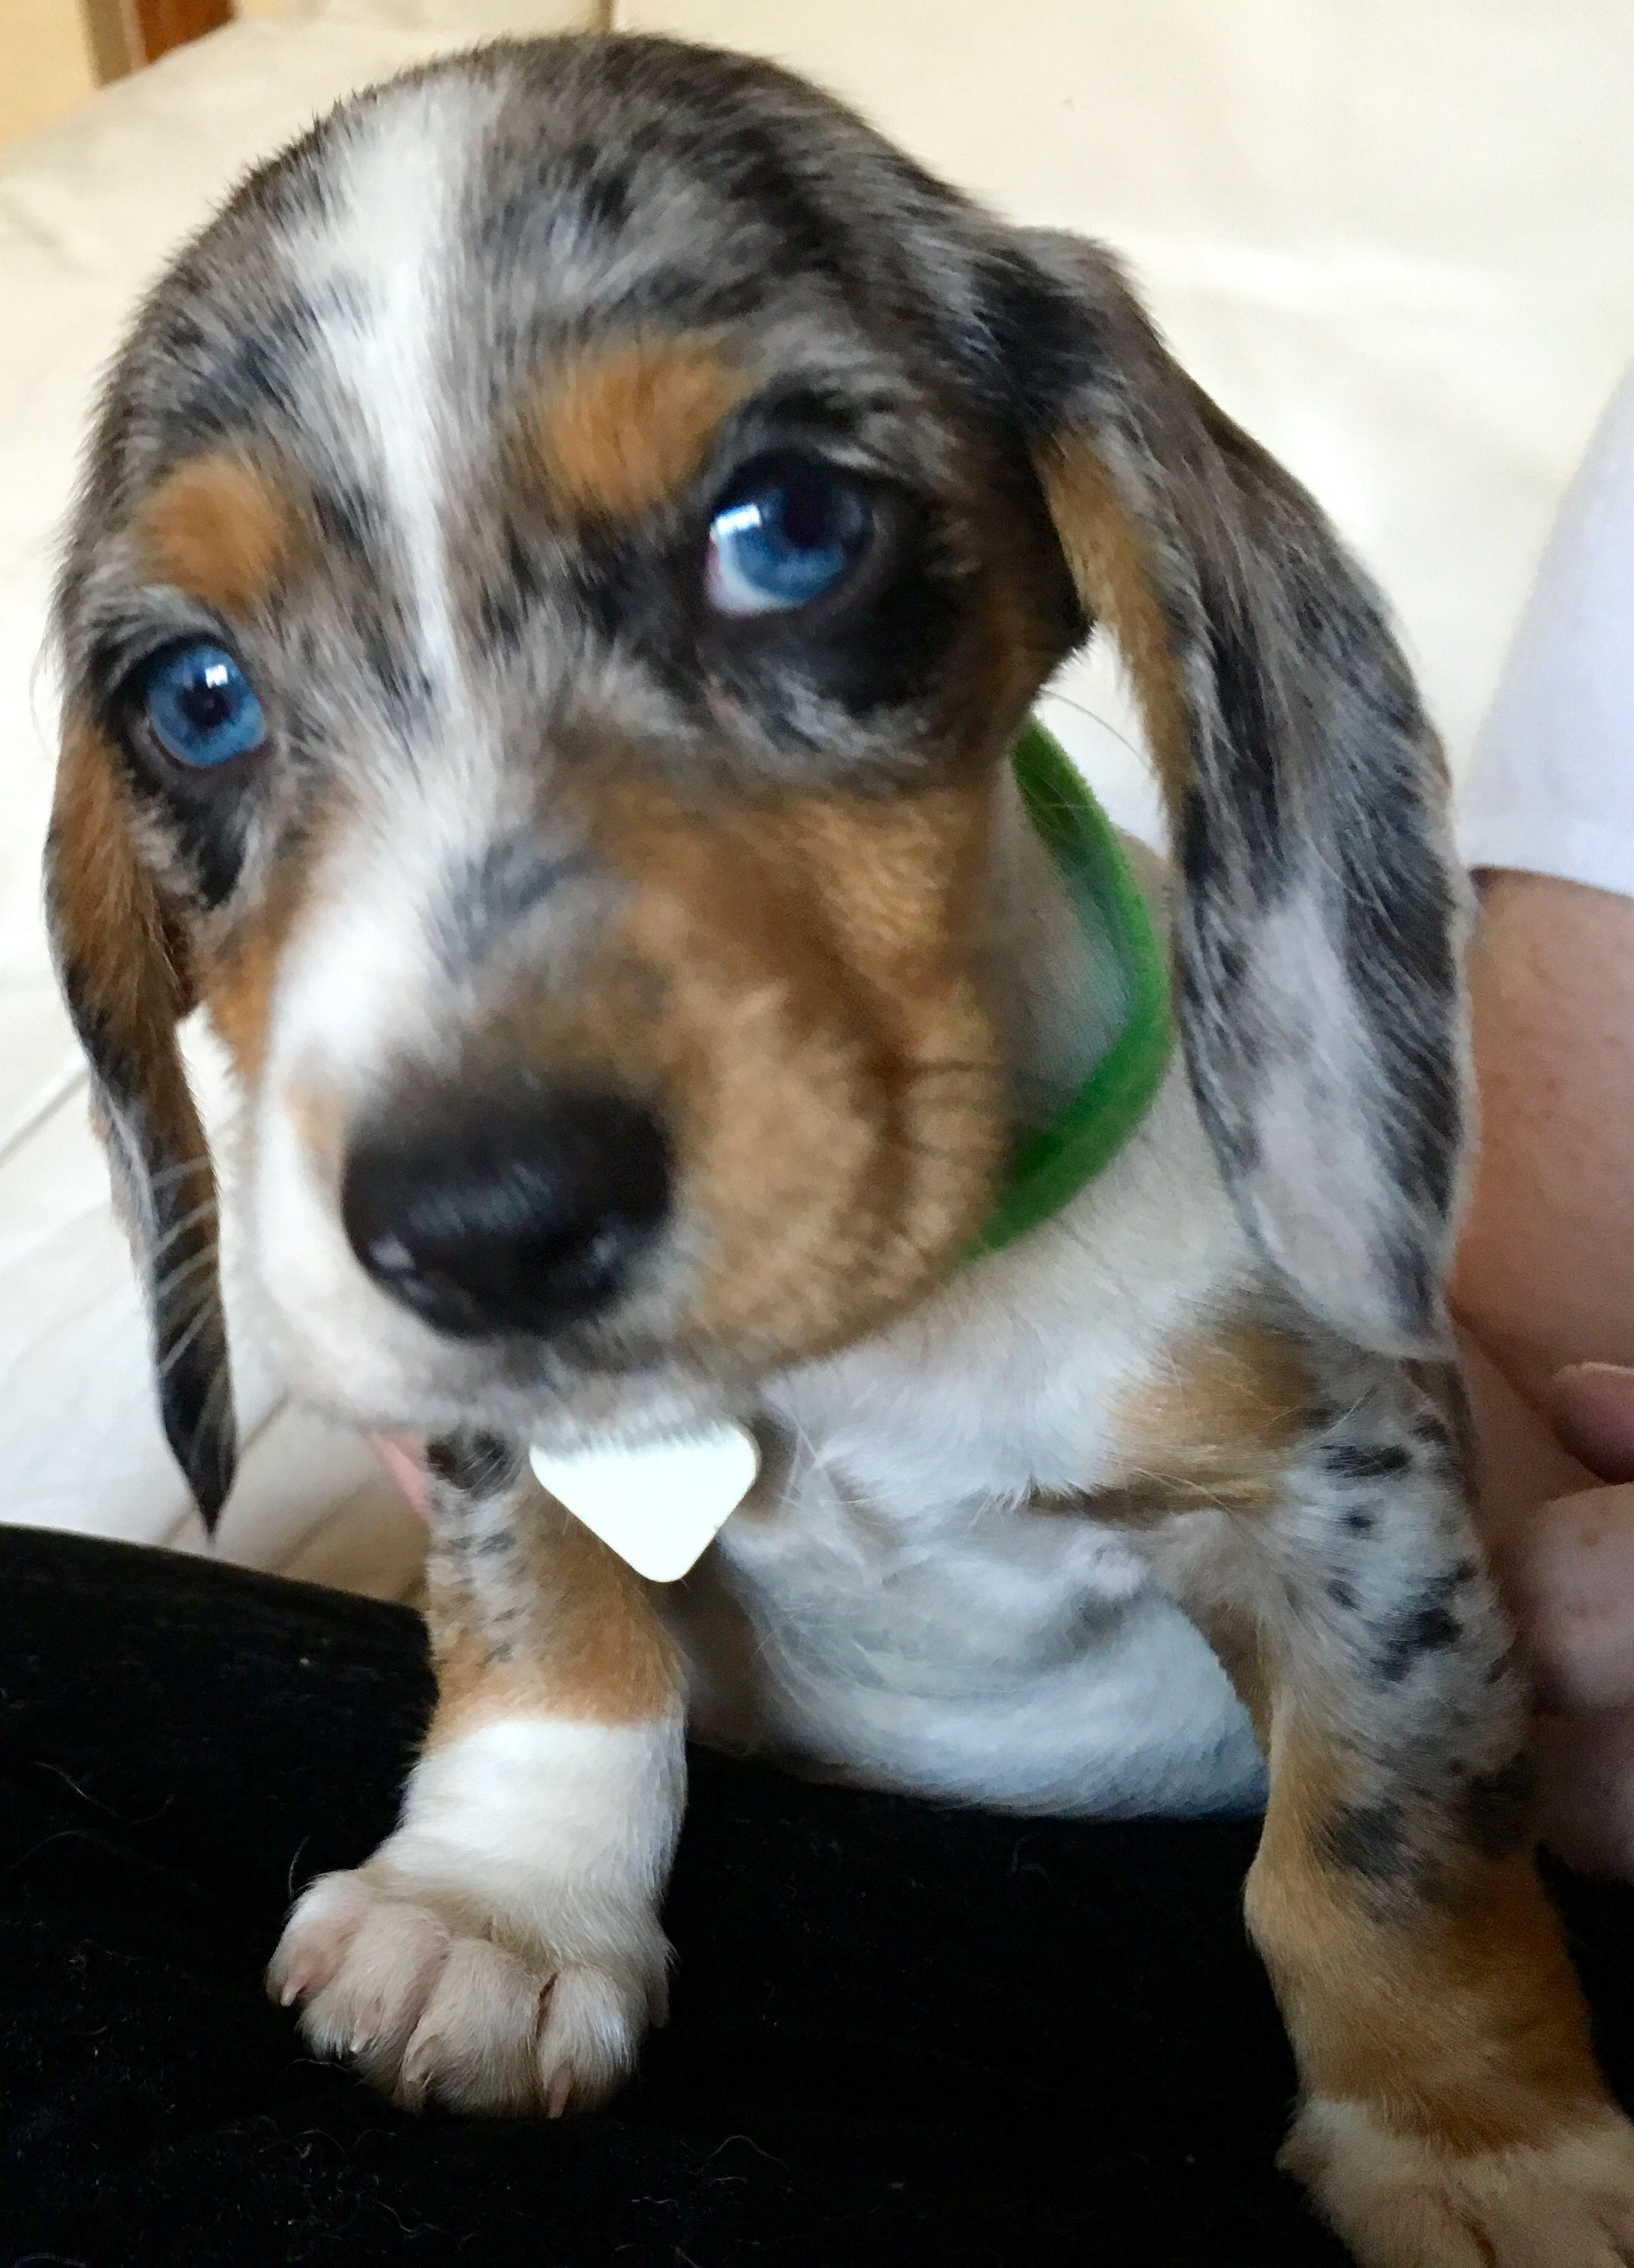 Double Dapple Dachshund With Blue Eyes Luv The Eyes Cuddles Muffin